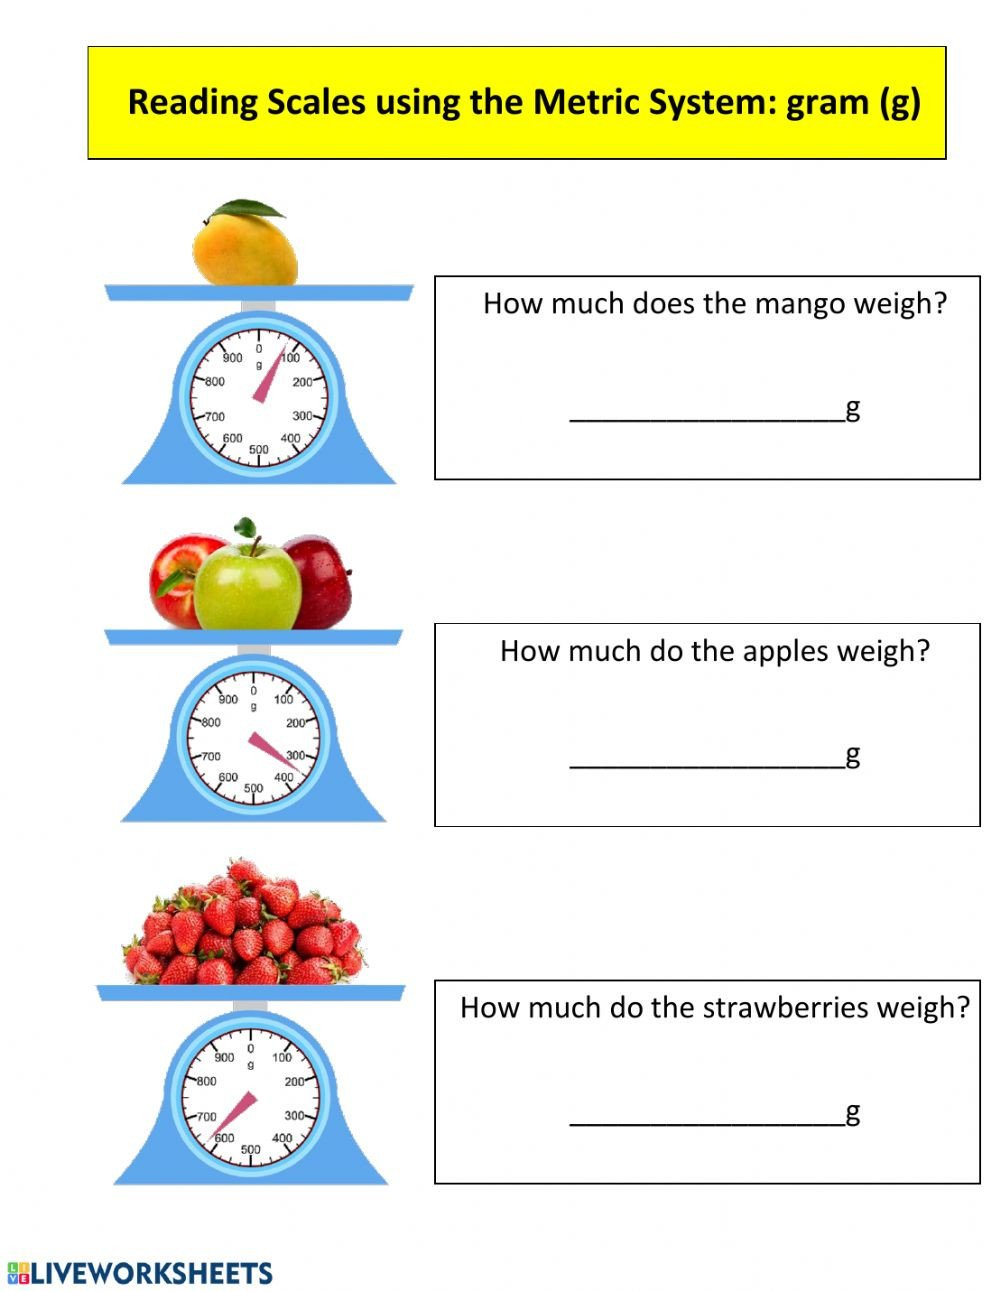 Reading A Scale Worksheet Reading Scales In the Metric System Gram G Interactive